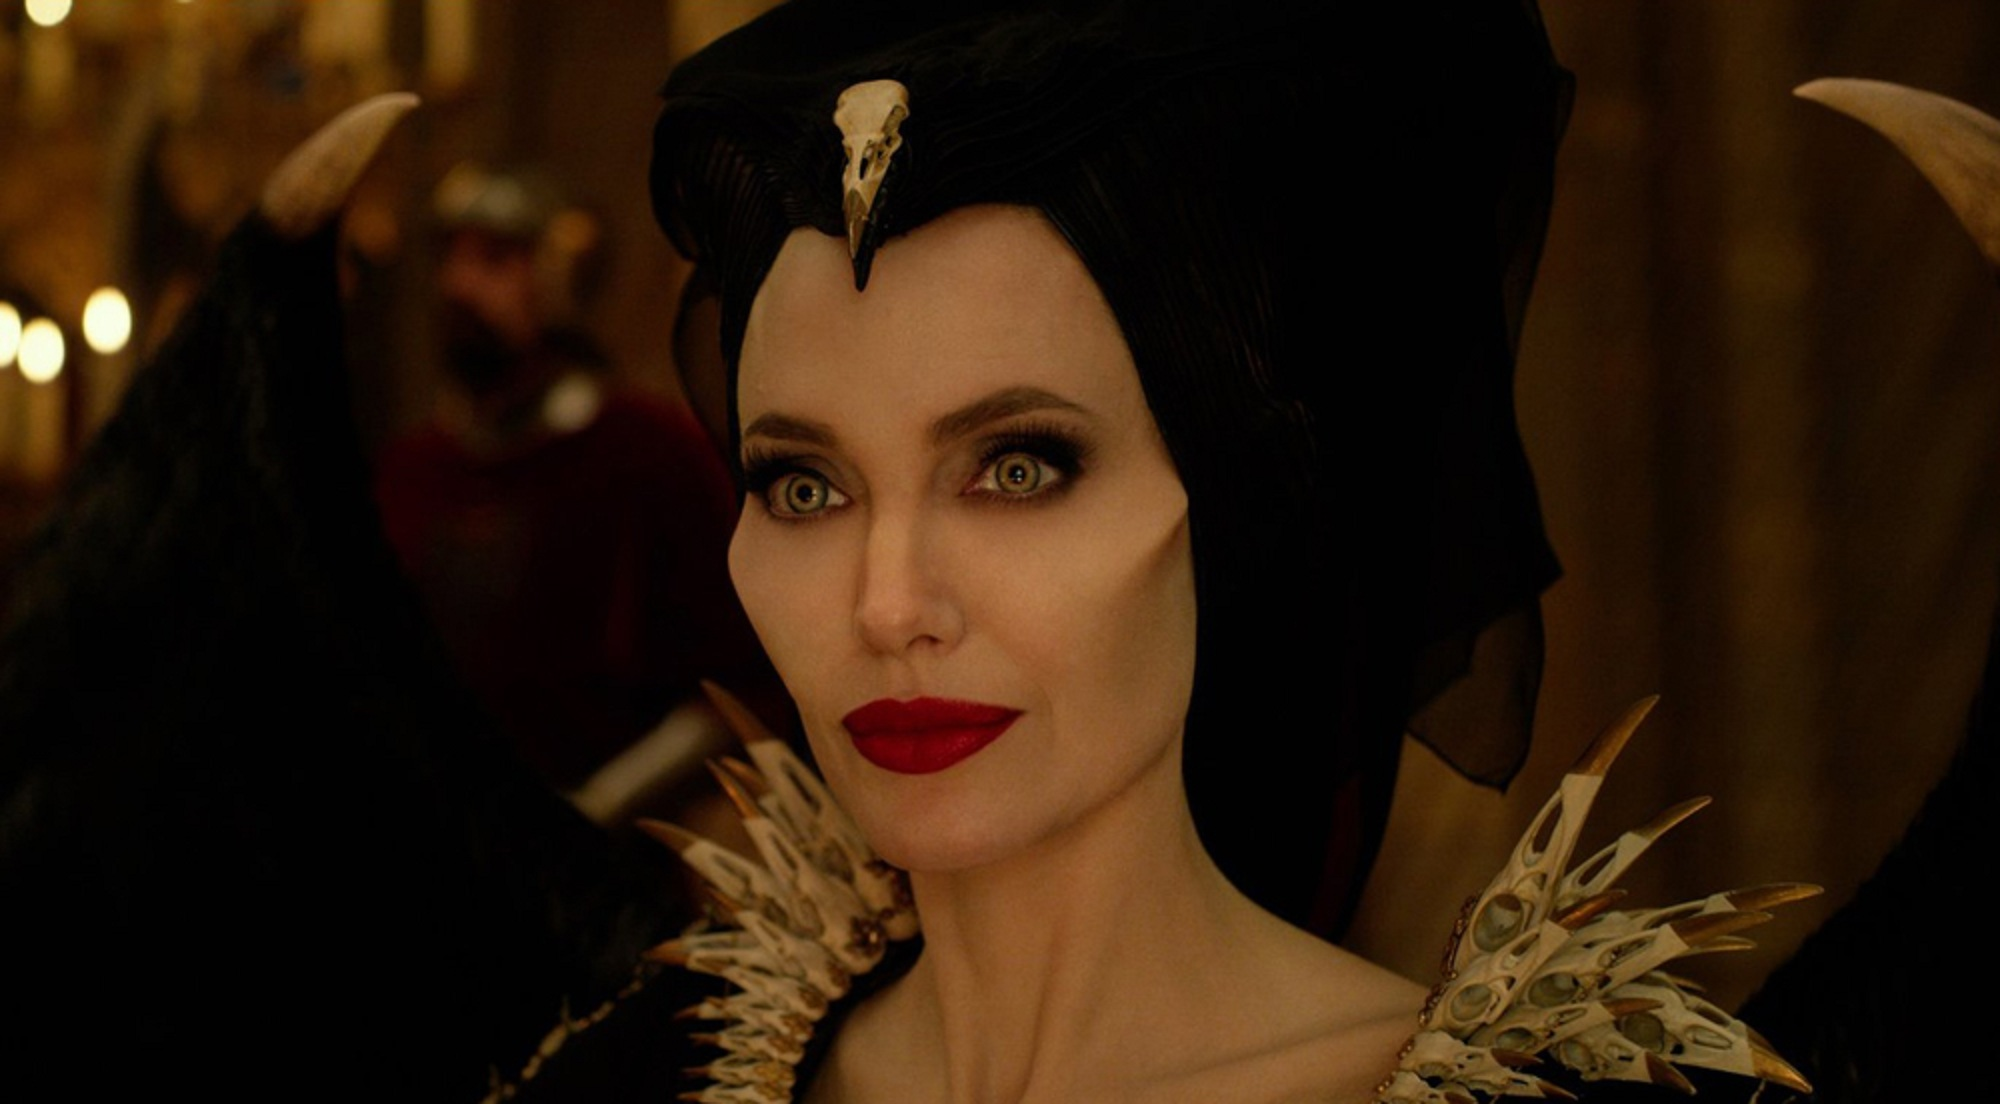 Watch First Trailer For Maleficent 2 Starring Angelina